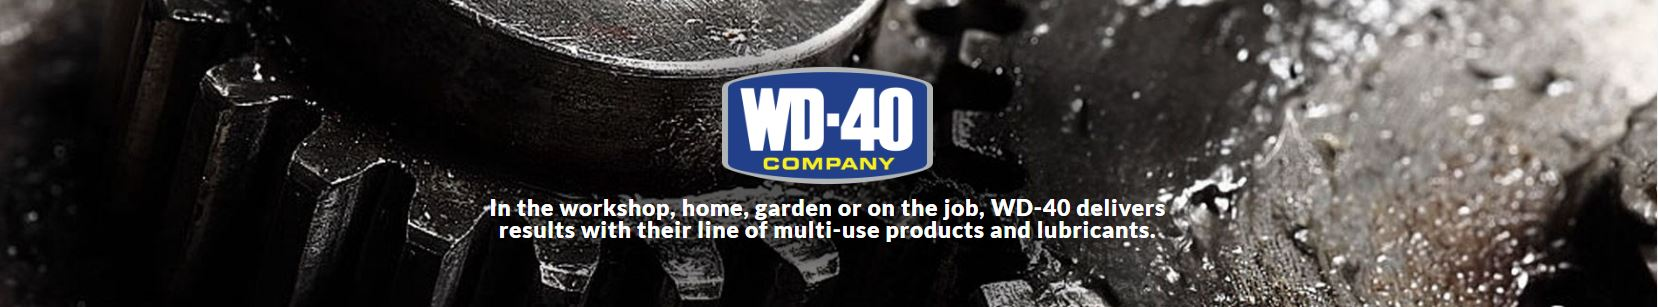 WD-40 Degreaser lubricants